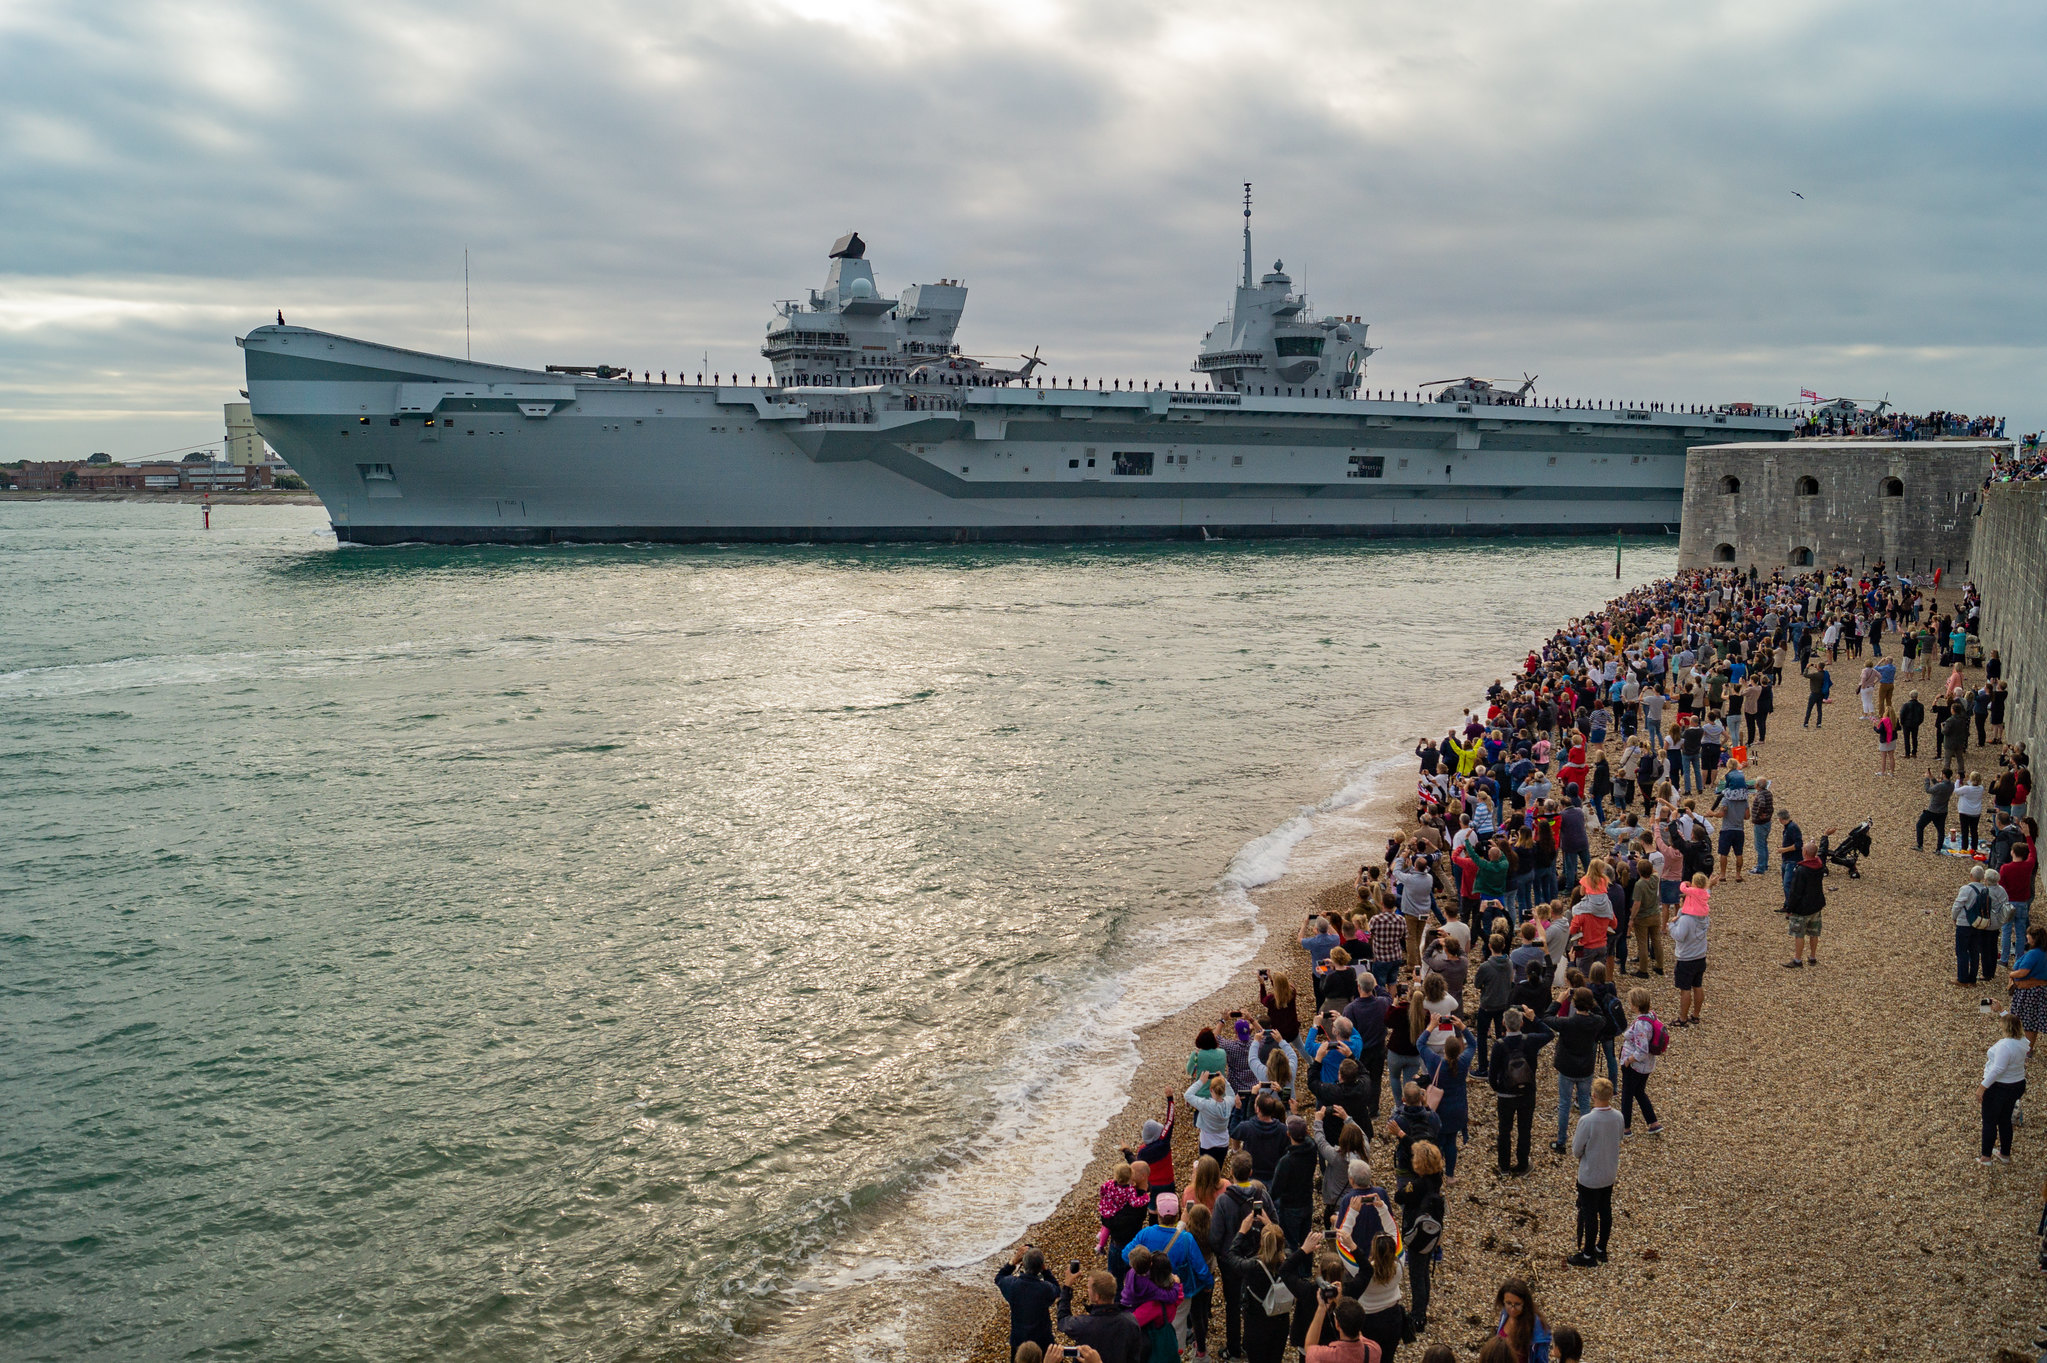 Aircraft Carrier (HMS Queen Elizabeth & HMS Prince of Wales) - Page 26 44068626722_8b61c136e9_k